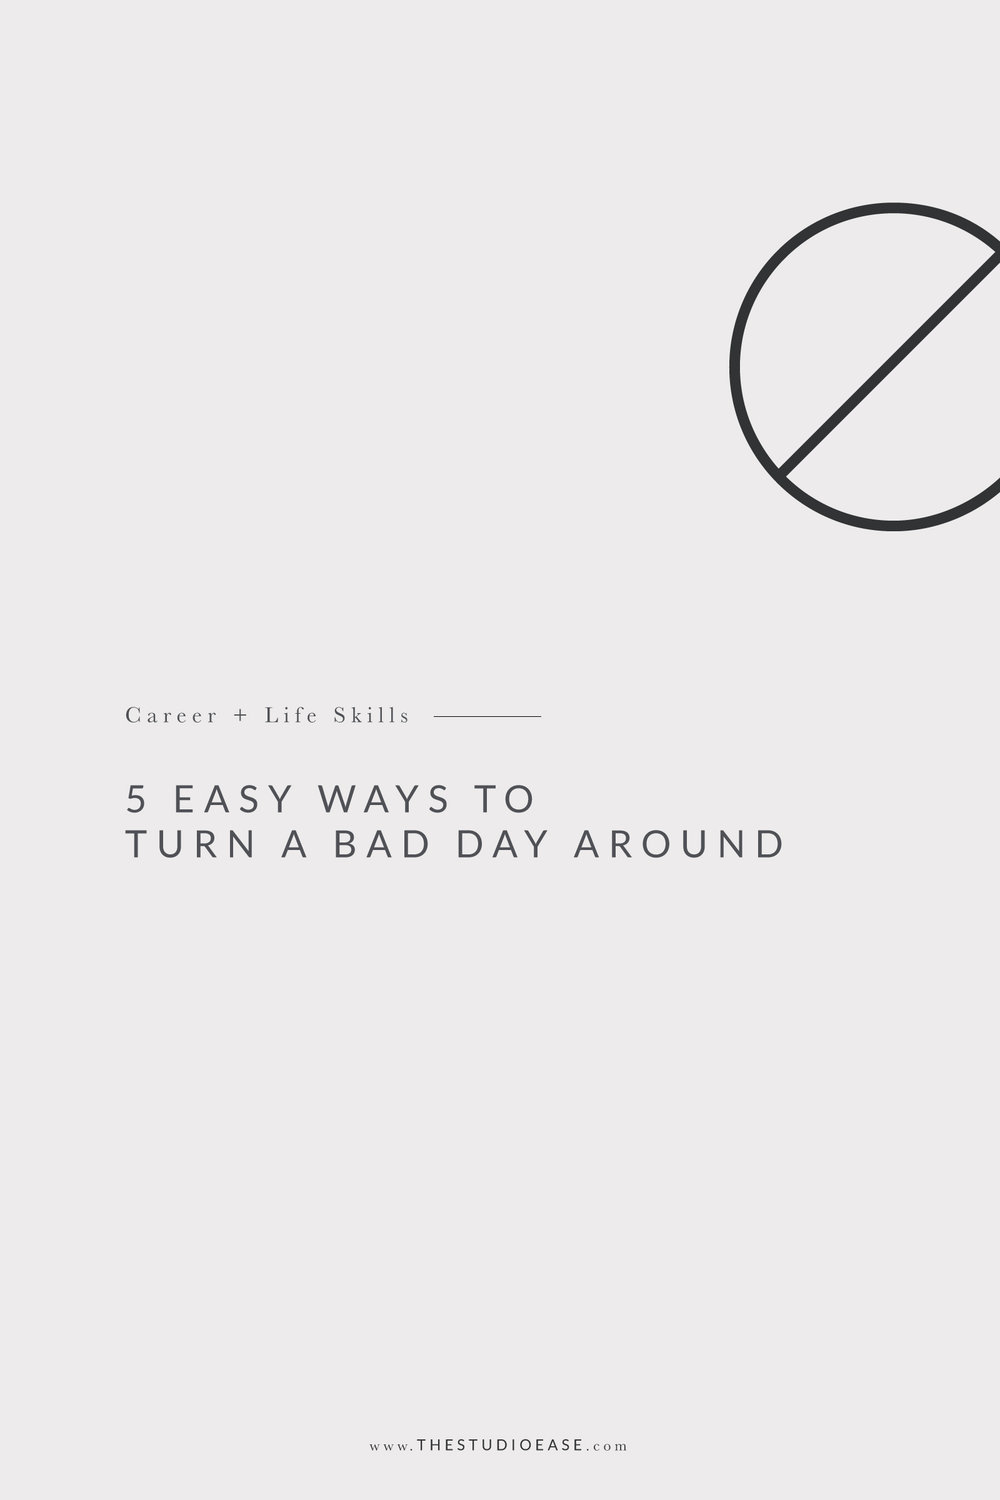 5 Easy Ways to Turn a Bad Day Around | #productivity, productivity tips, midday slump, afternoon pick me up, organization, career skills